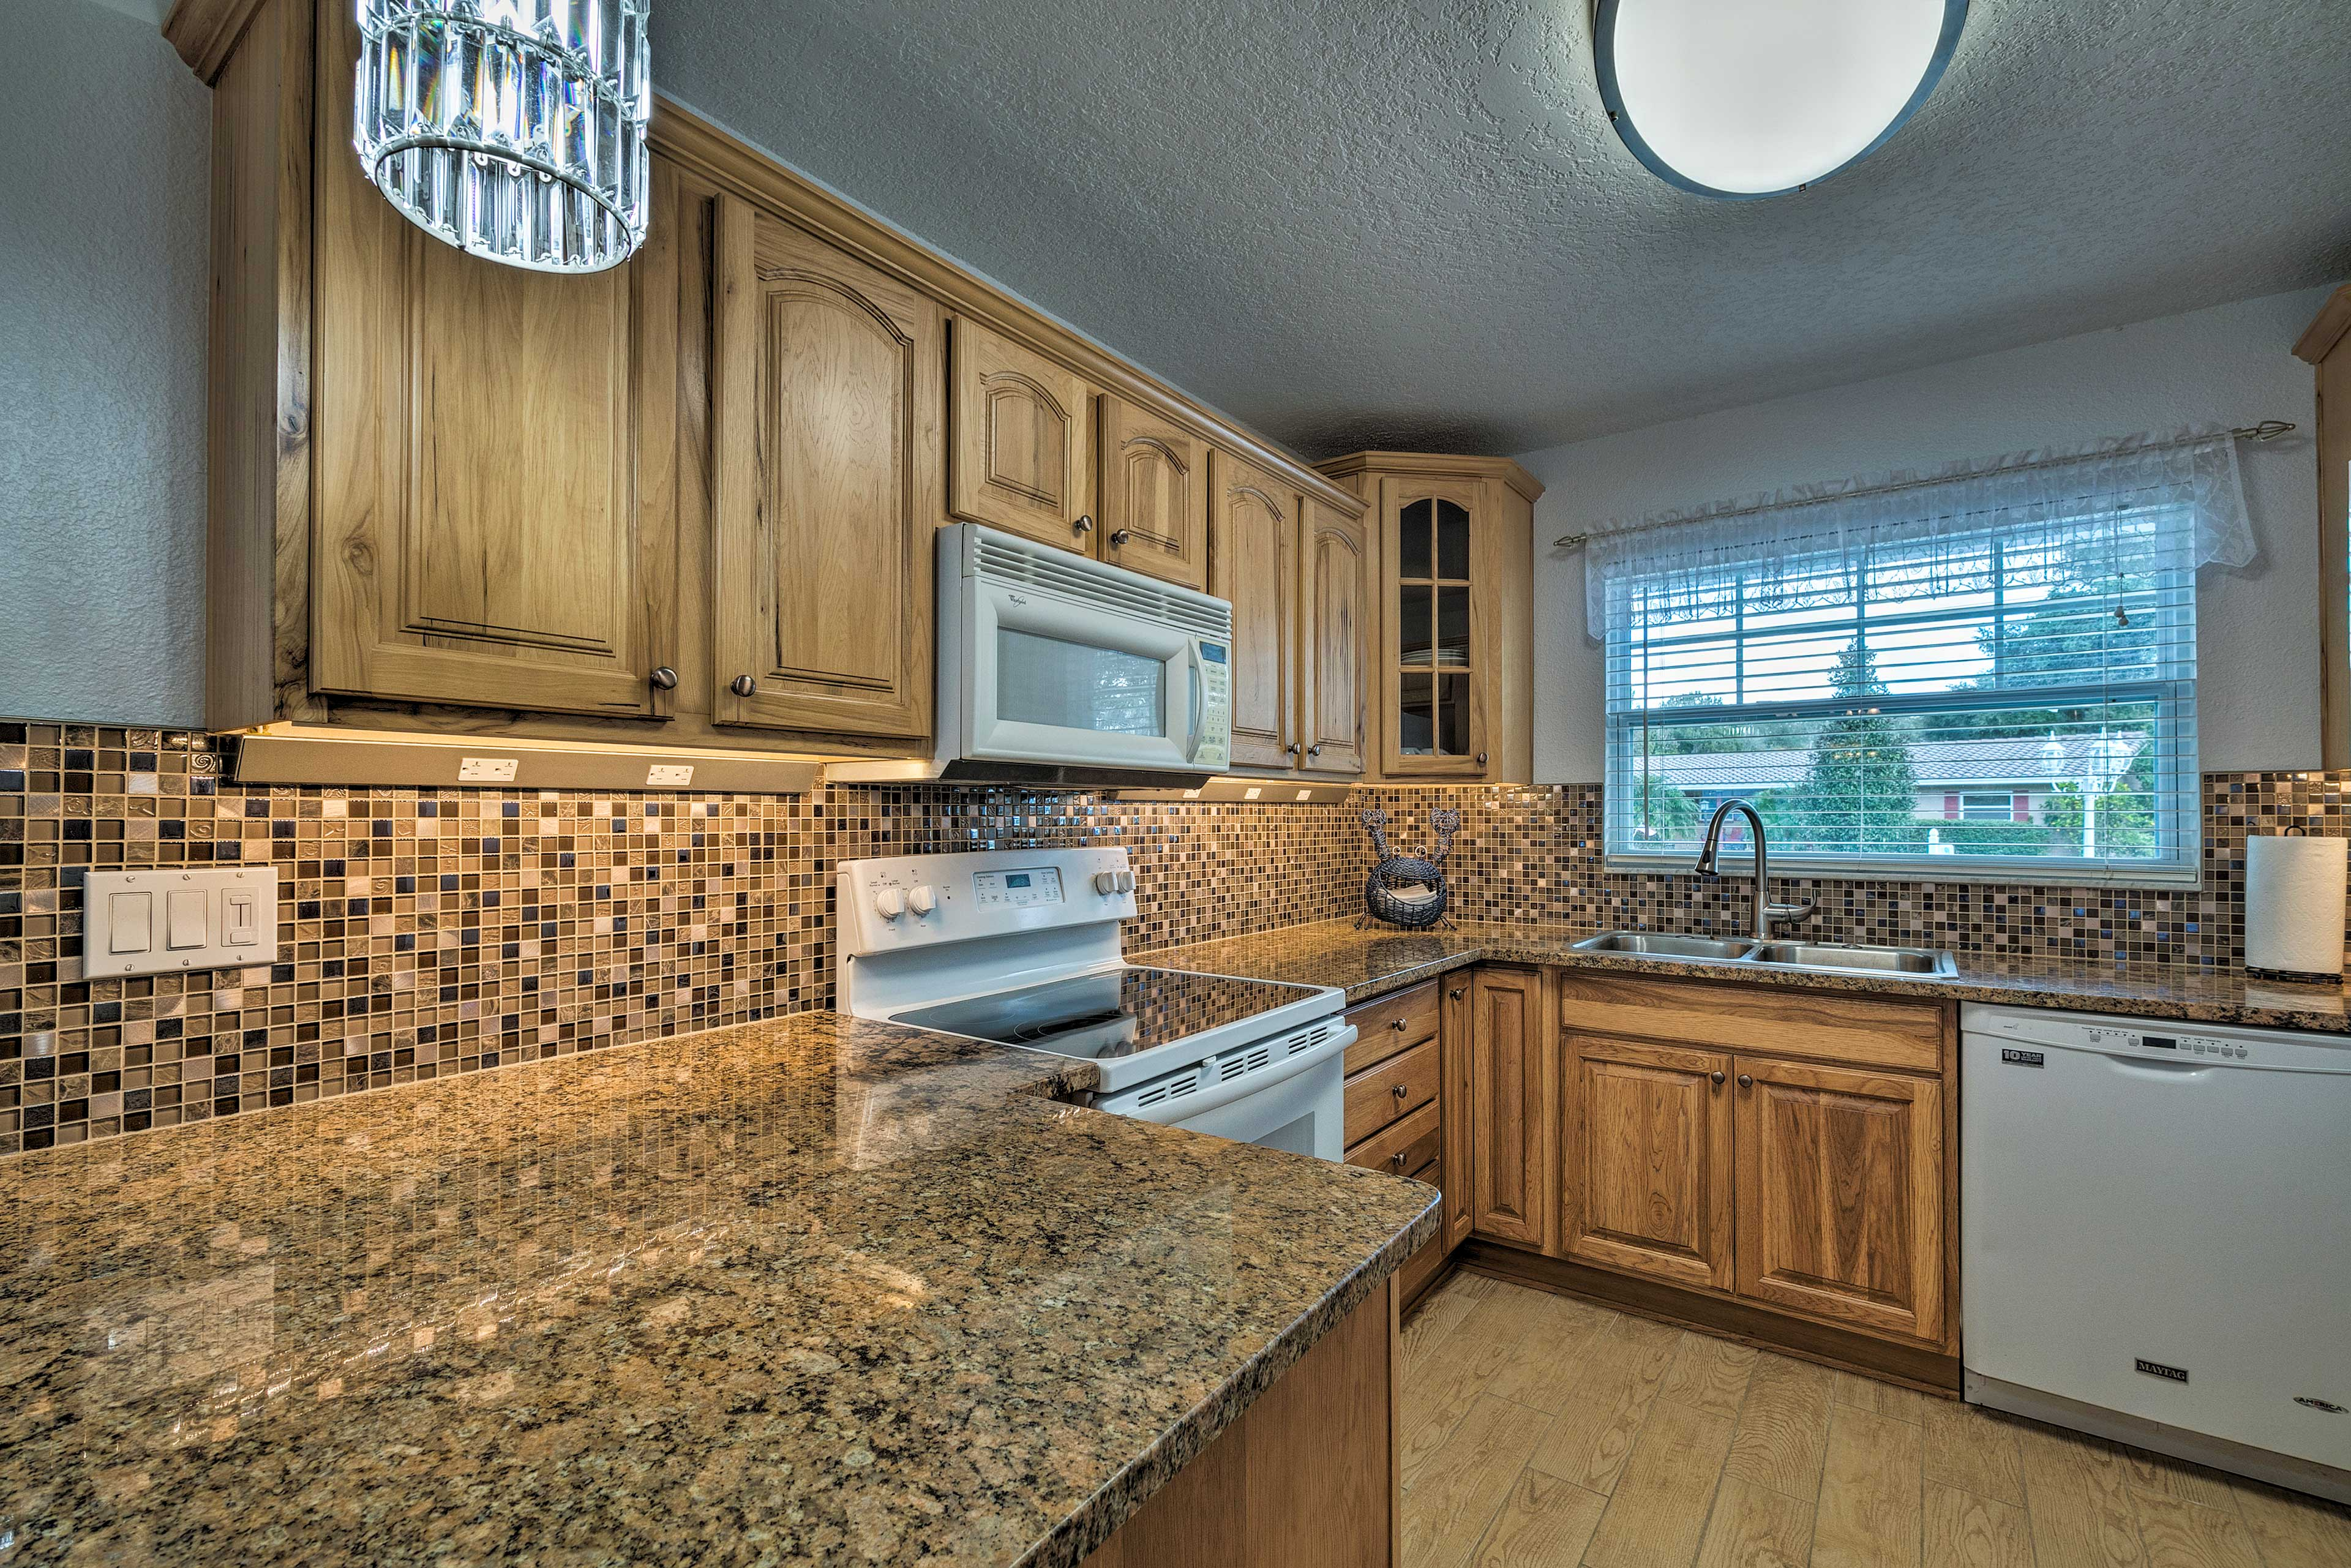 Whip up a tasty home-cooked dish in the fully equipped kitchen.